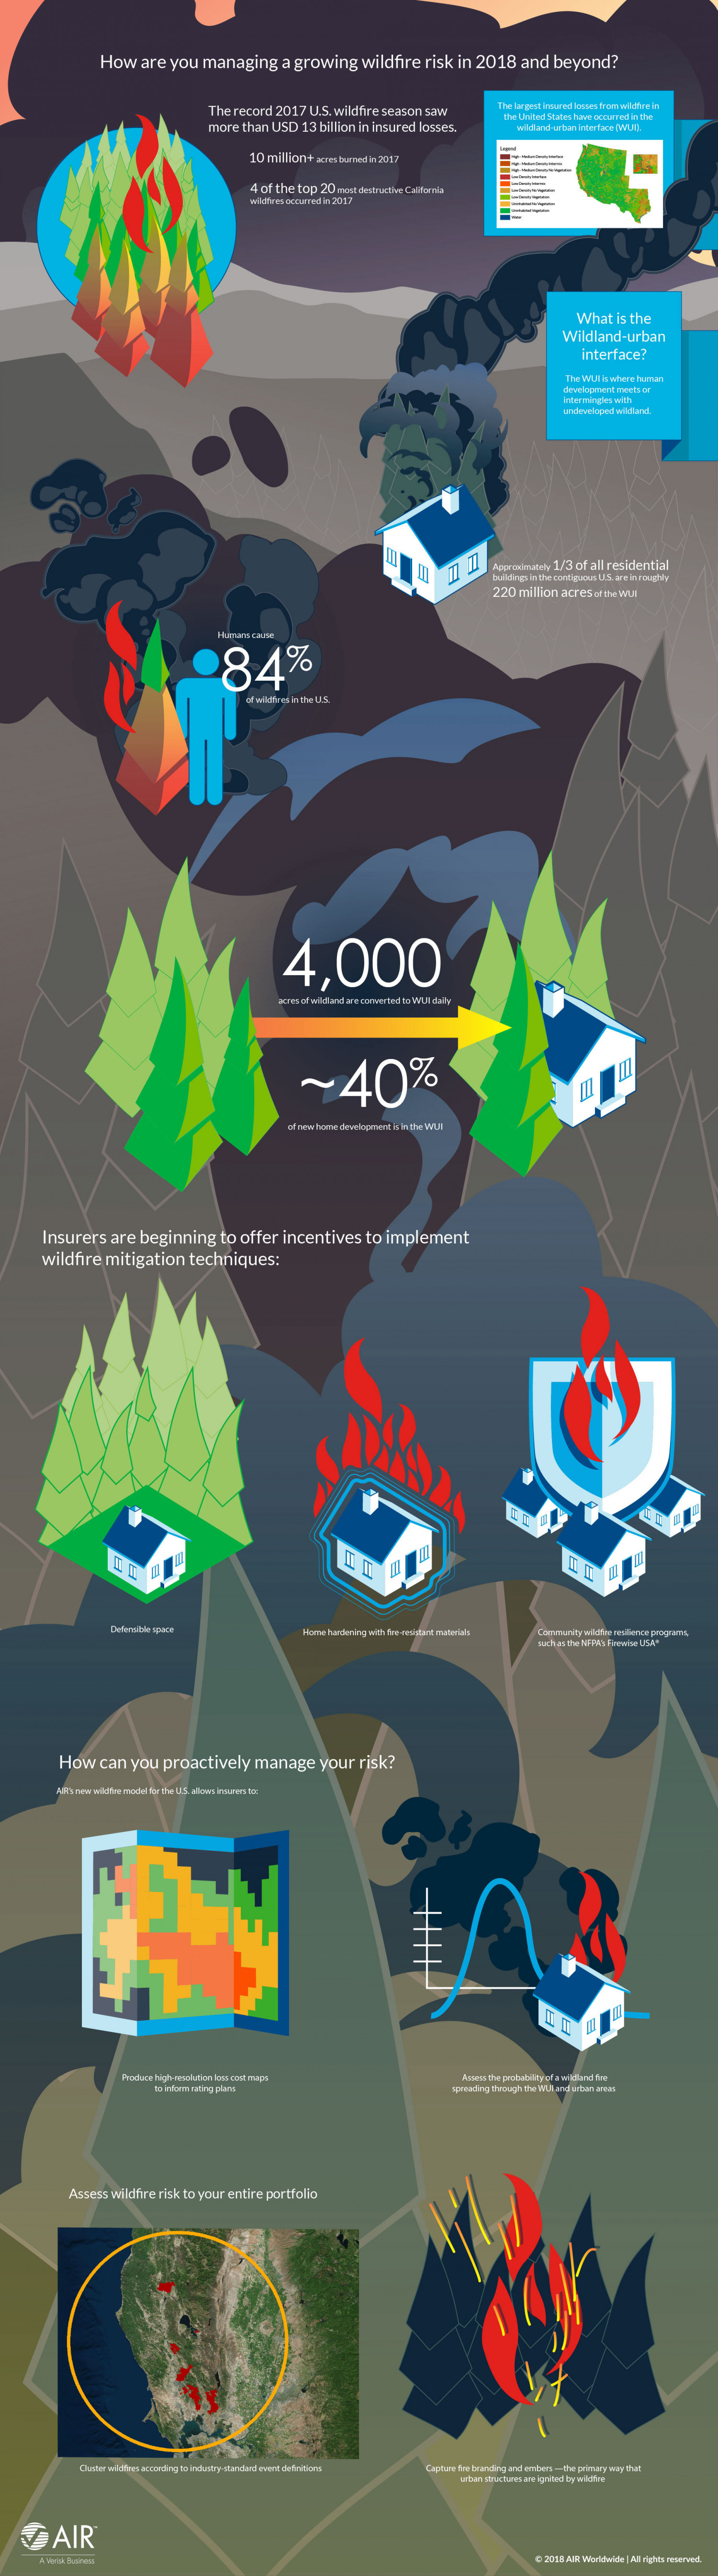 How are you managing a growing wildfire risk in 2018 and beyond? Infographic